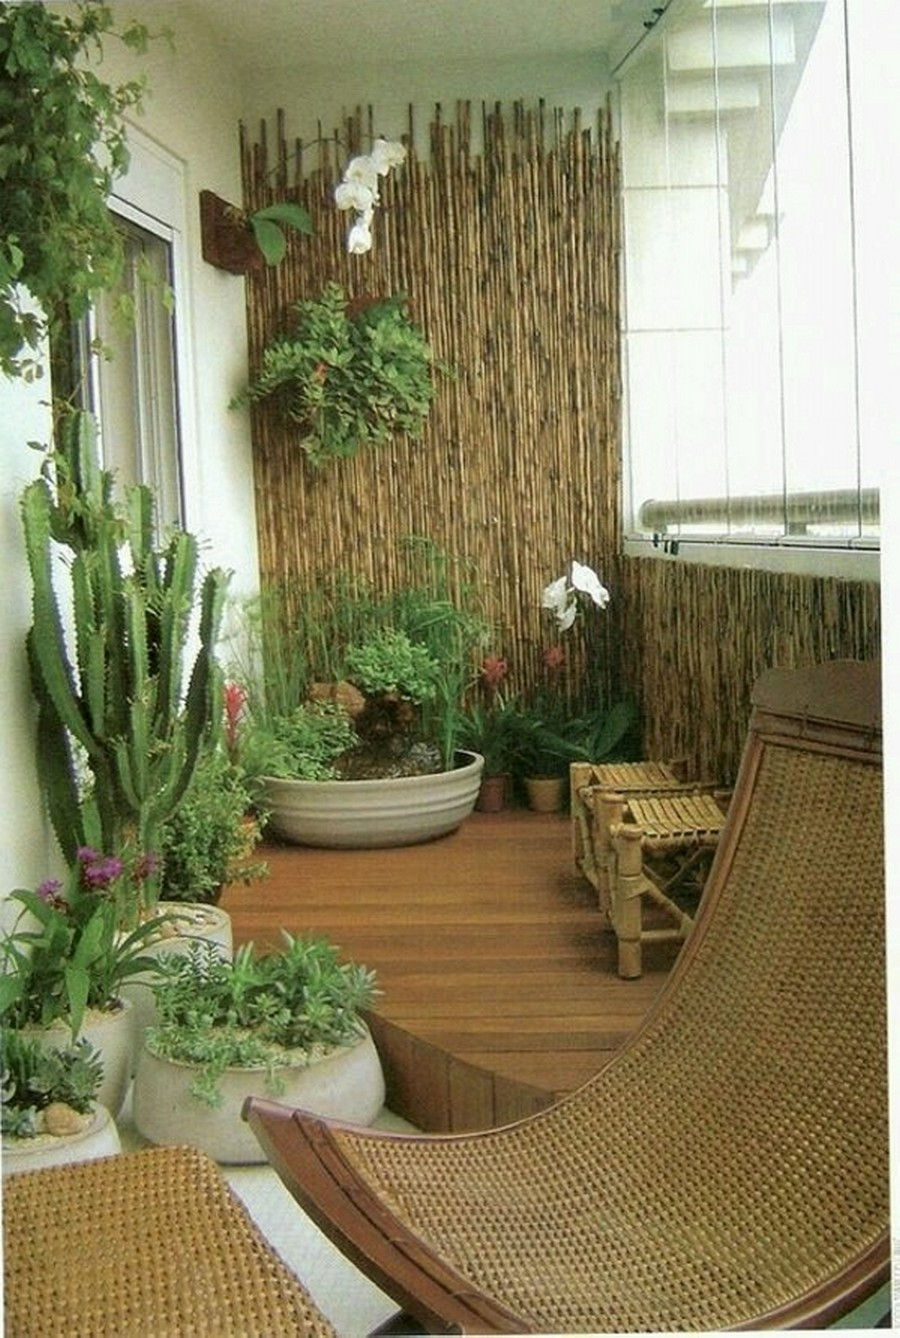 Balcony Decor Garden Idea